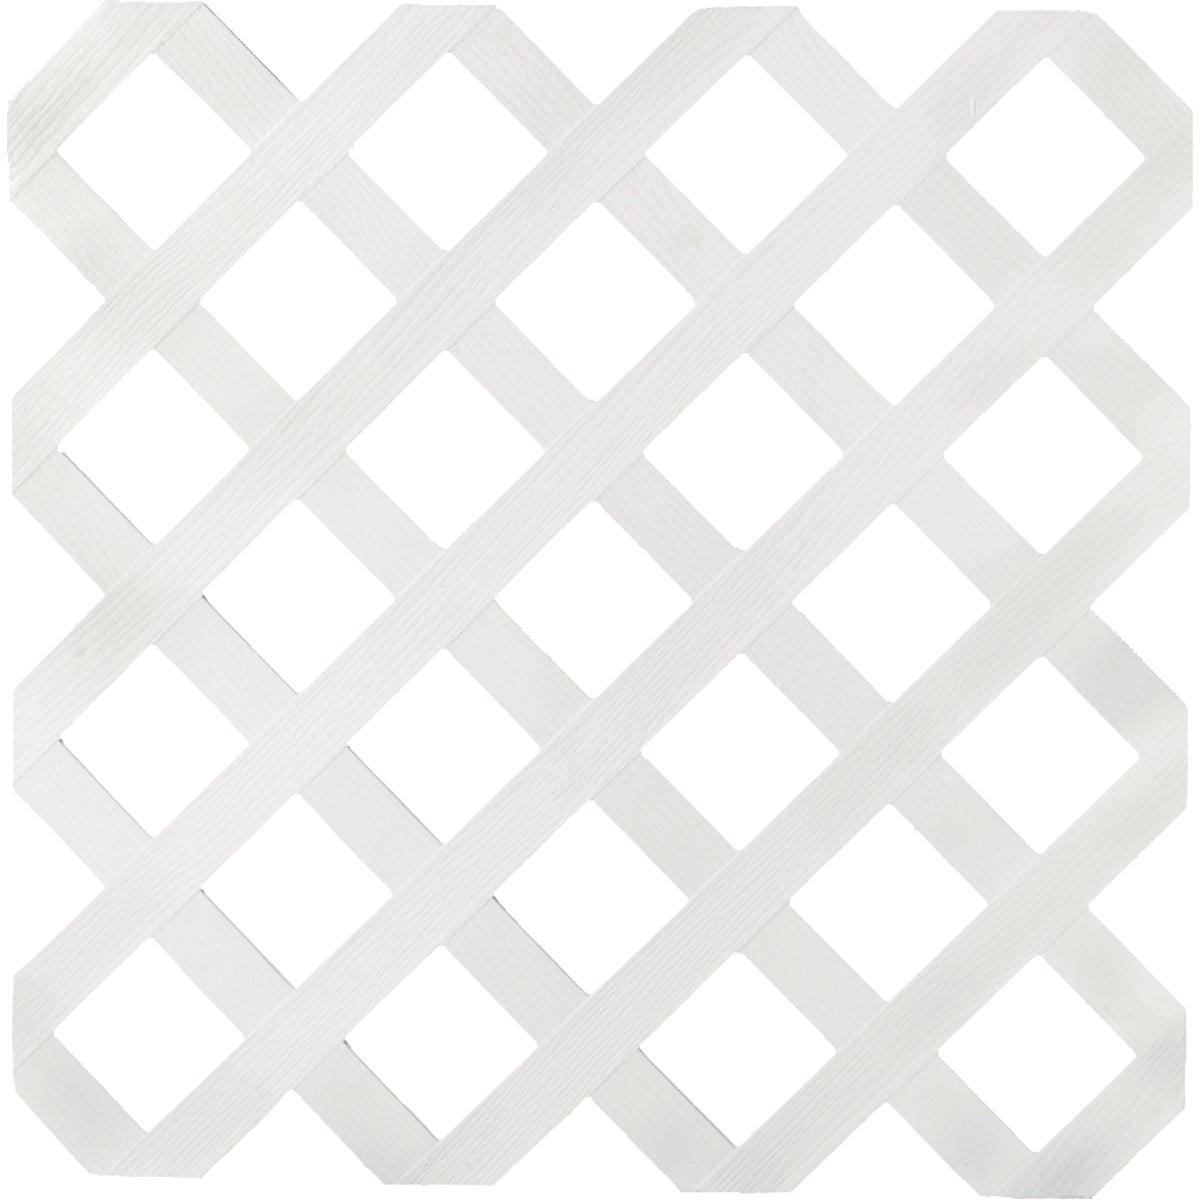 4X8 WHITE LATTICE - 79897 by Ufpi   Plstc Lattice